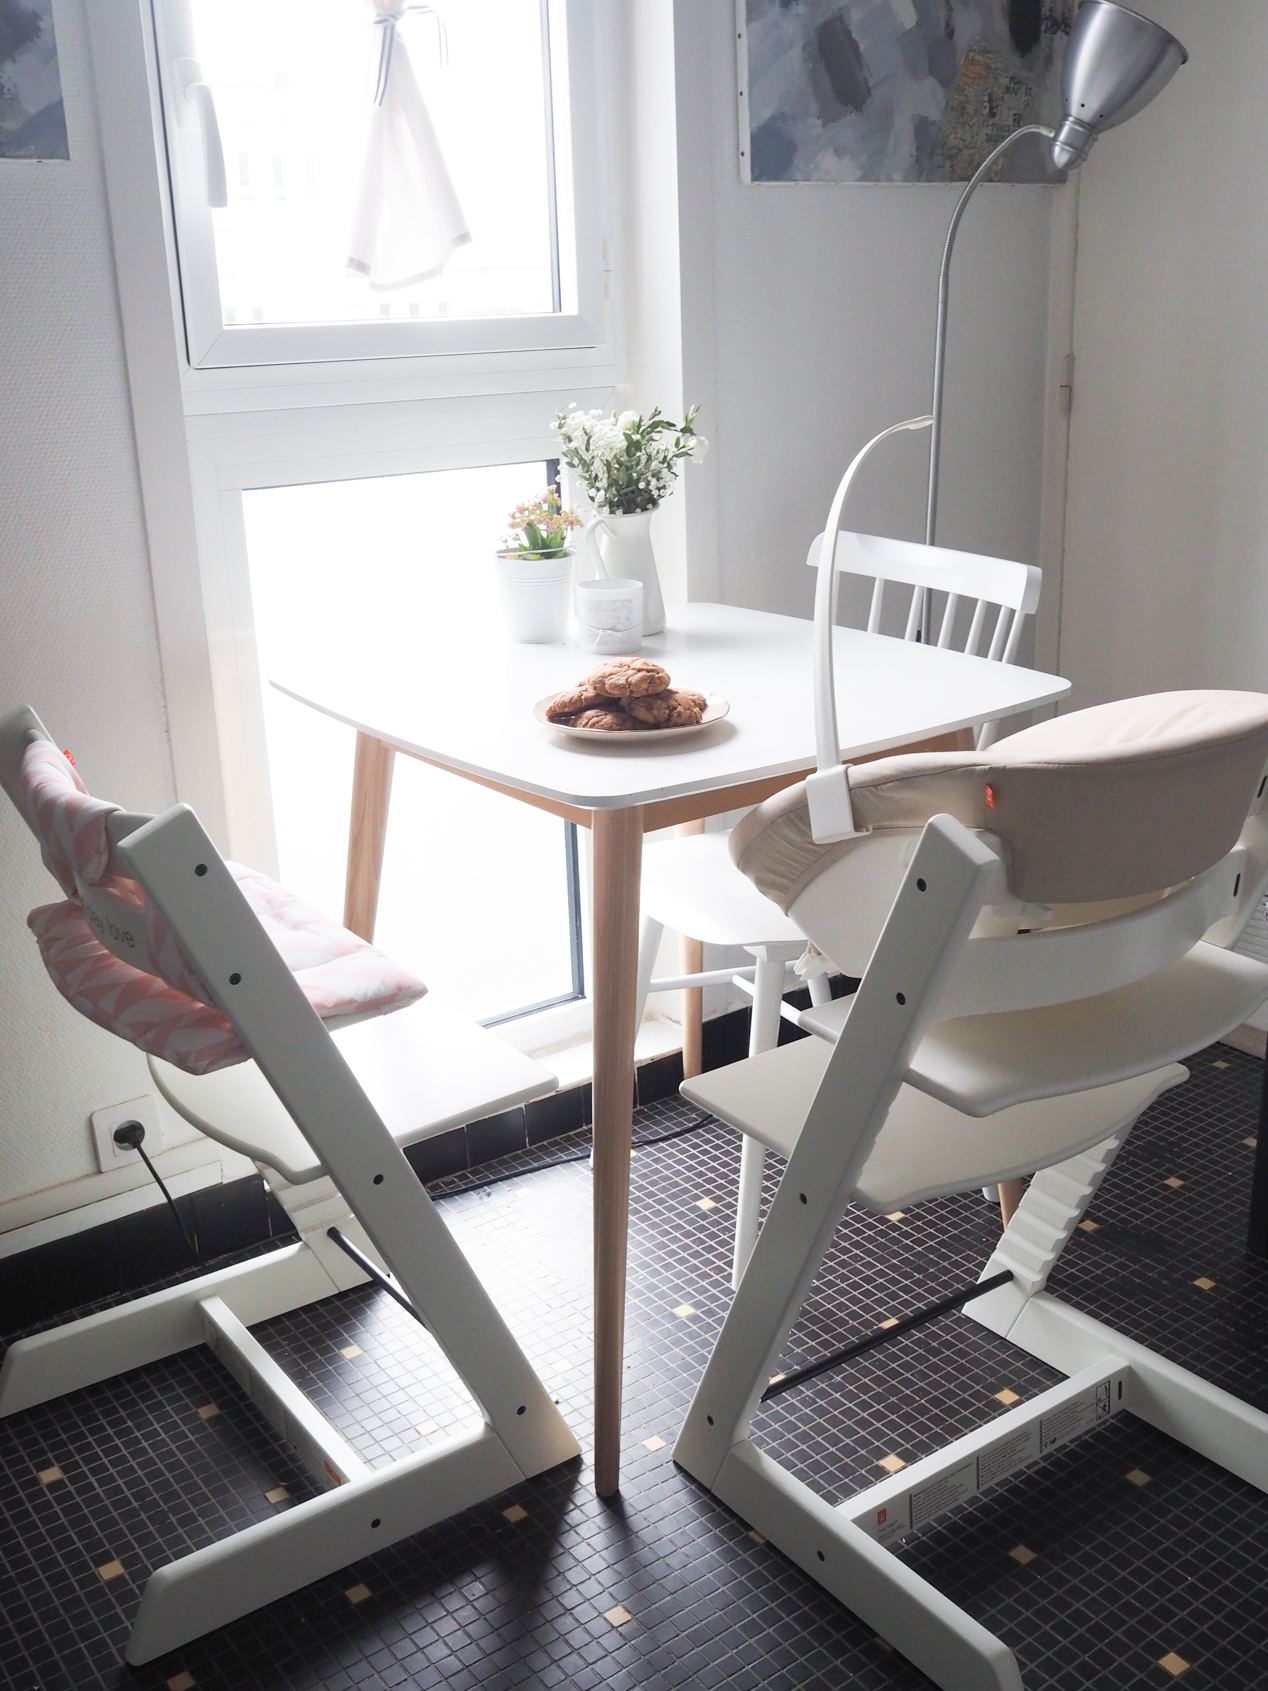 Interview blog Milk Magazine Stokke La Fiancee du Panda Living blog lifestyle -216367